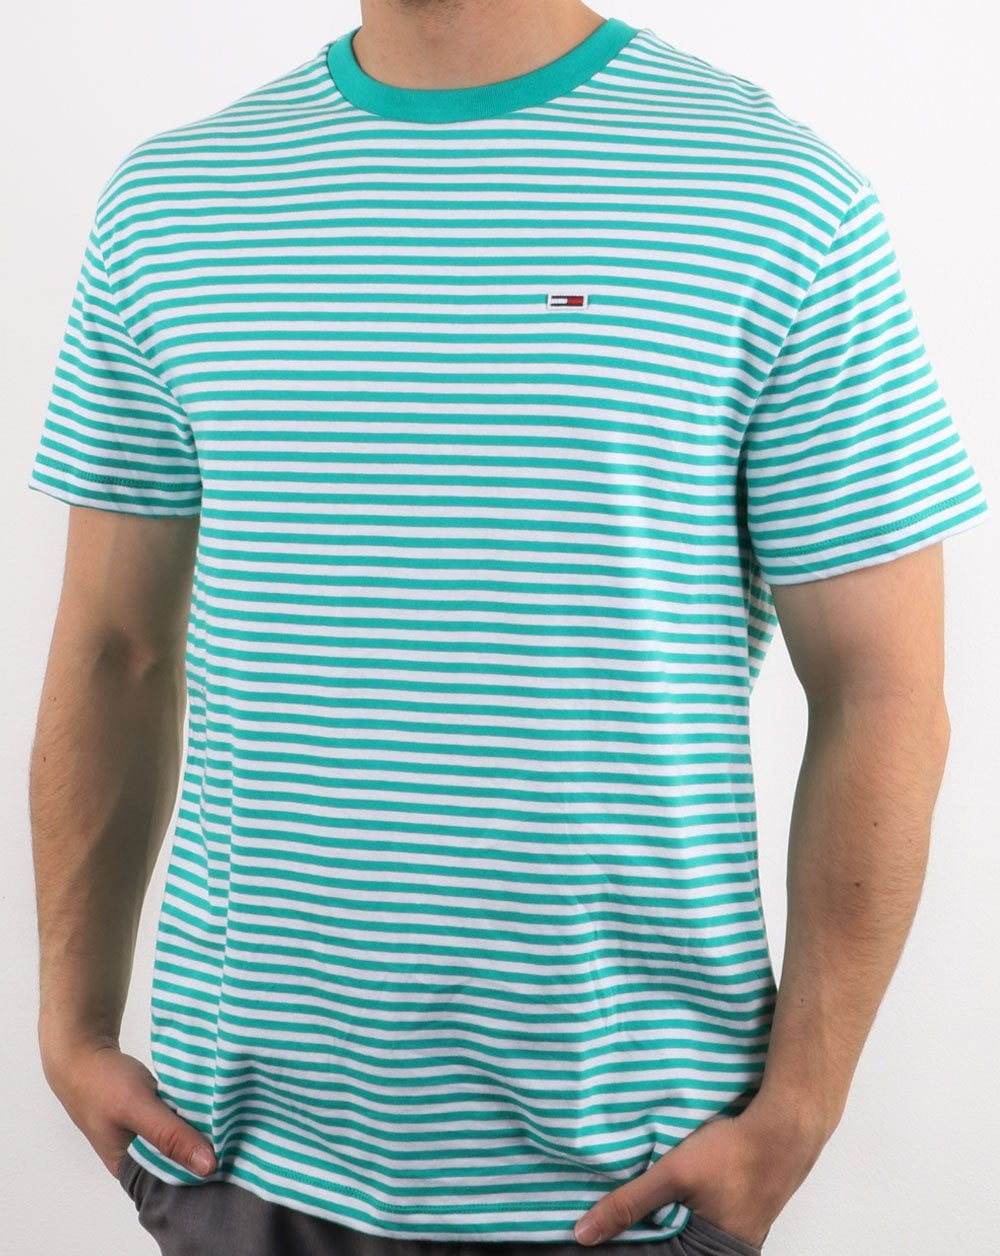 9952f141 Tommy Hilfiger Striped T Shirt in Green and White | 80s Casual Classics